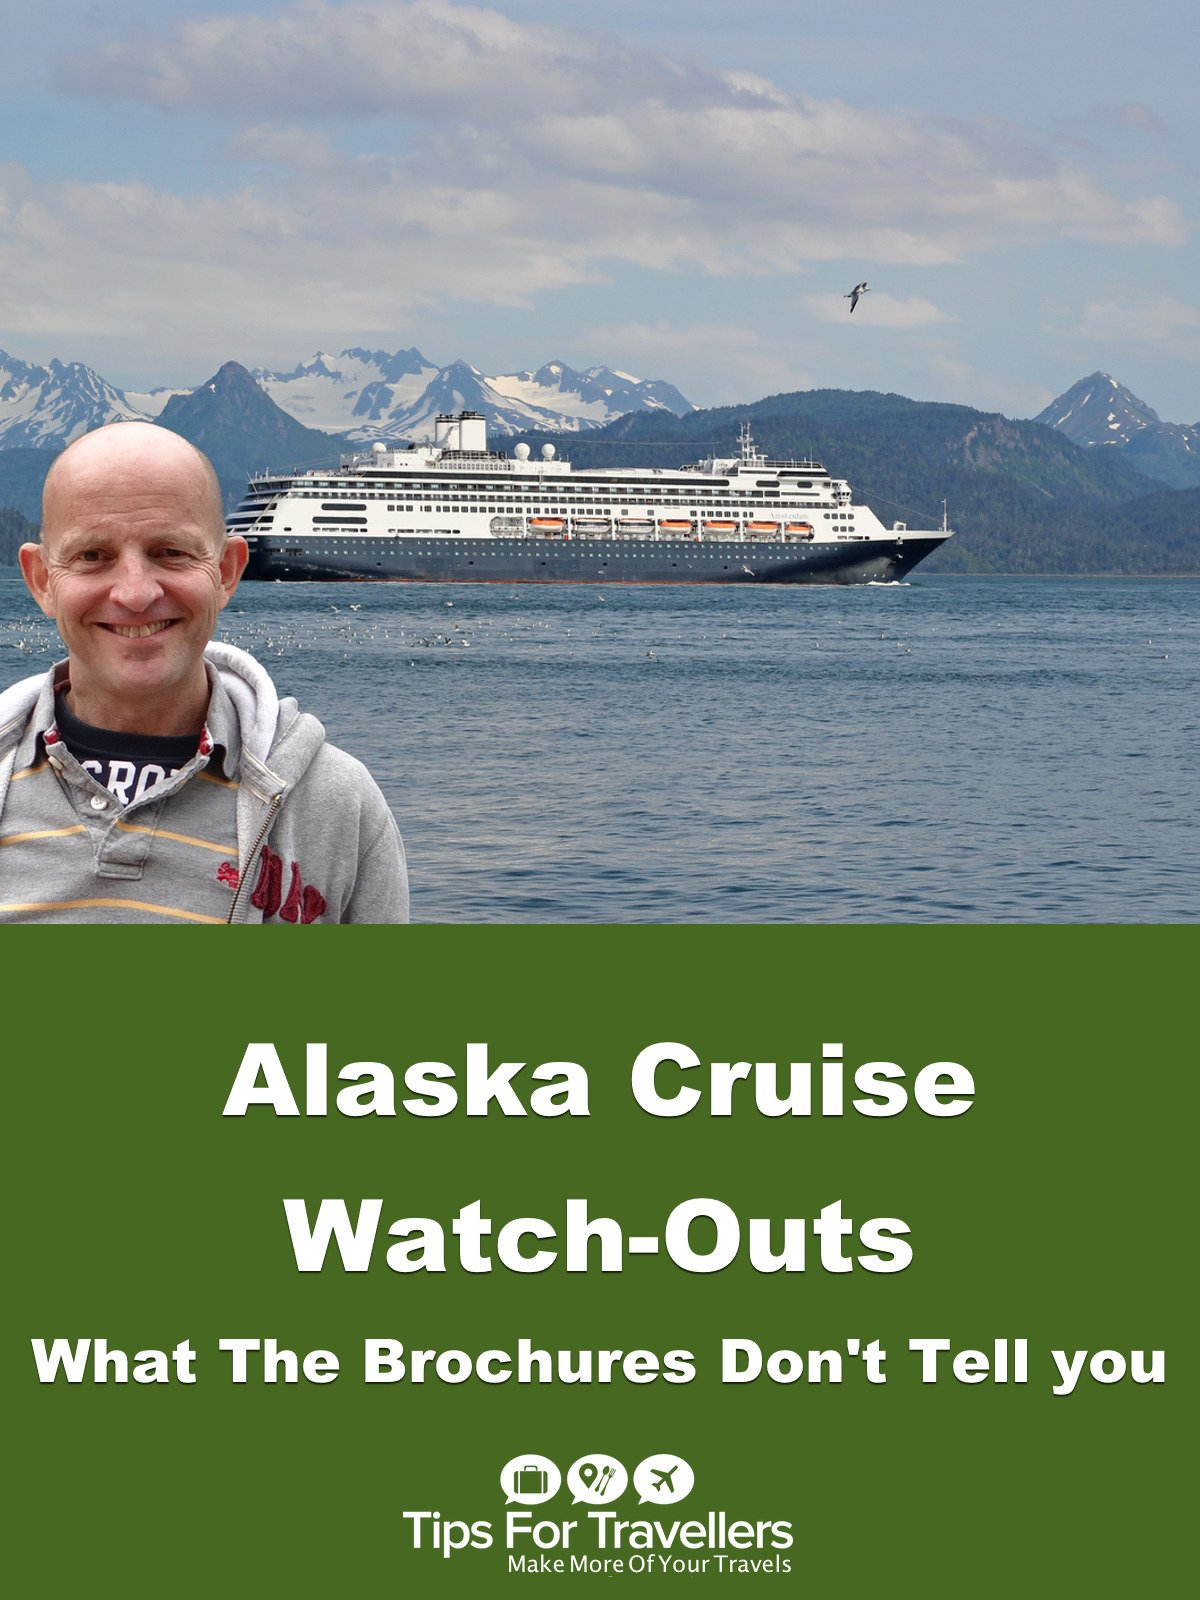 Clip: Alaska Cruise Watch-Outs. What The Brochures Don't Tell You